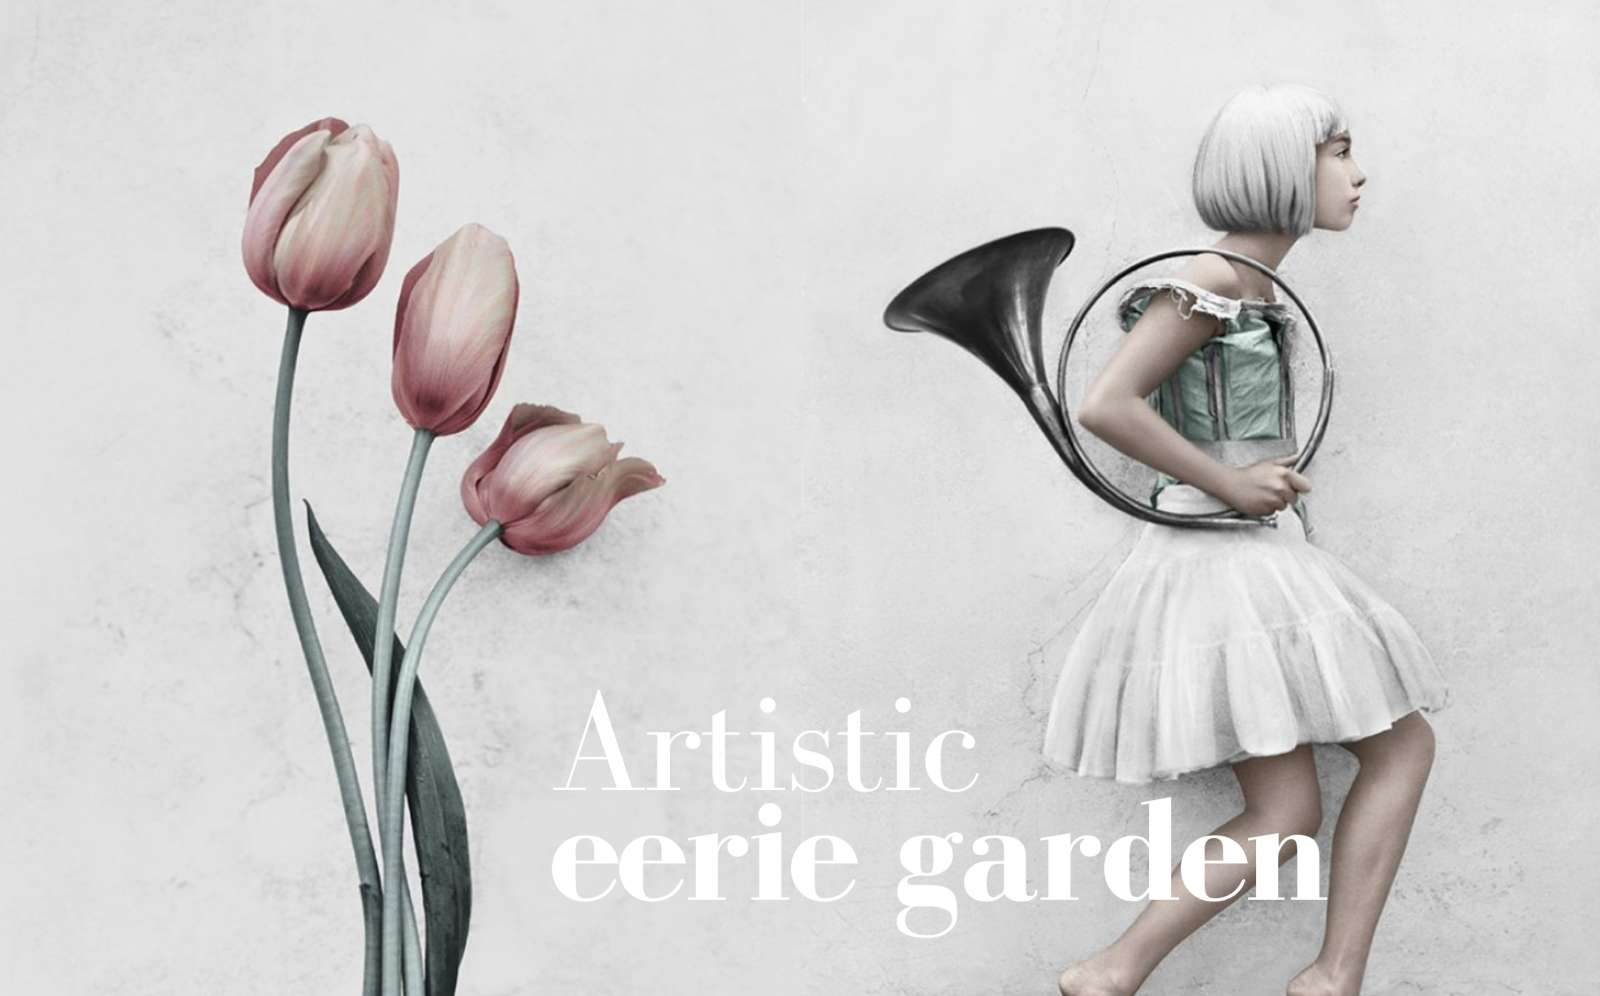 Artistic Eerie Garden: Interview with Vee Speers